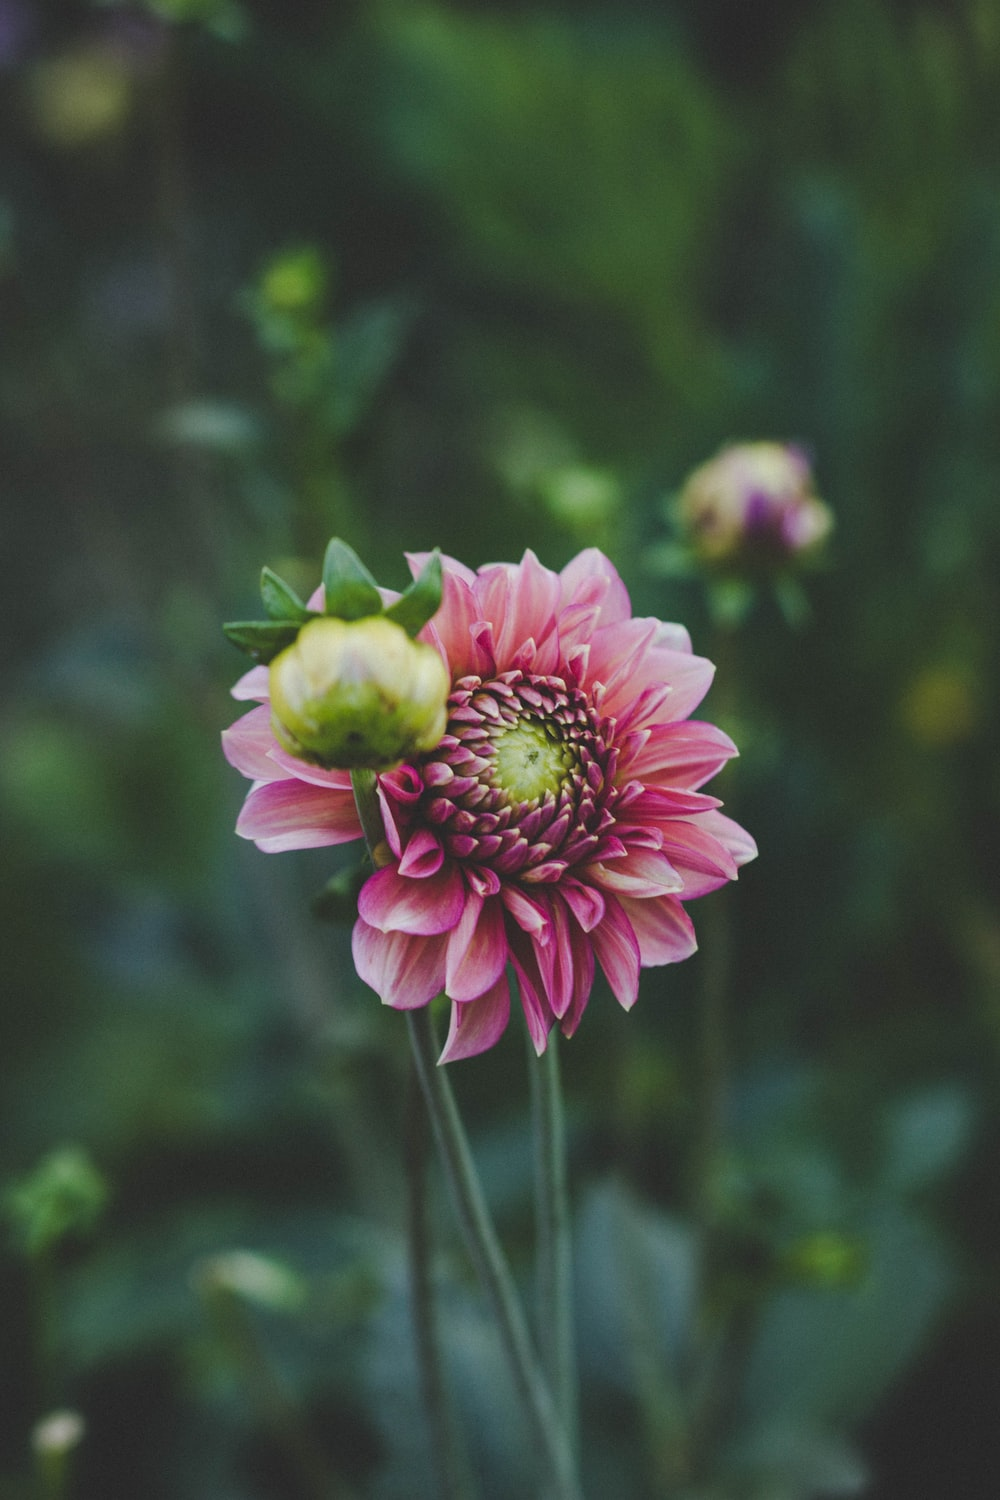 Flower pink flowers flowers and vegetable garden hd photo by selective focus photography of pink dahlia flower in bloom izmirmasajfo